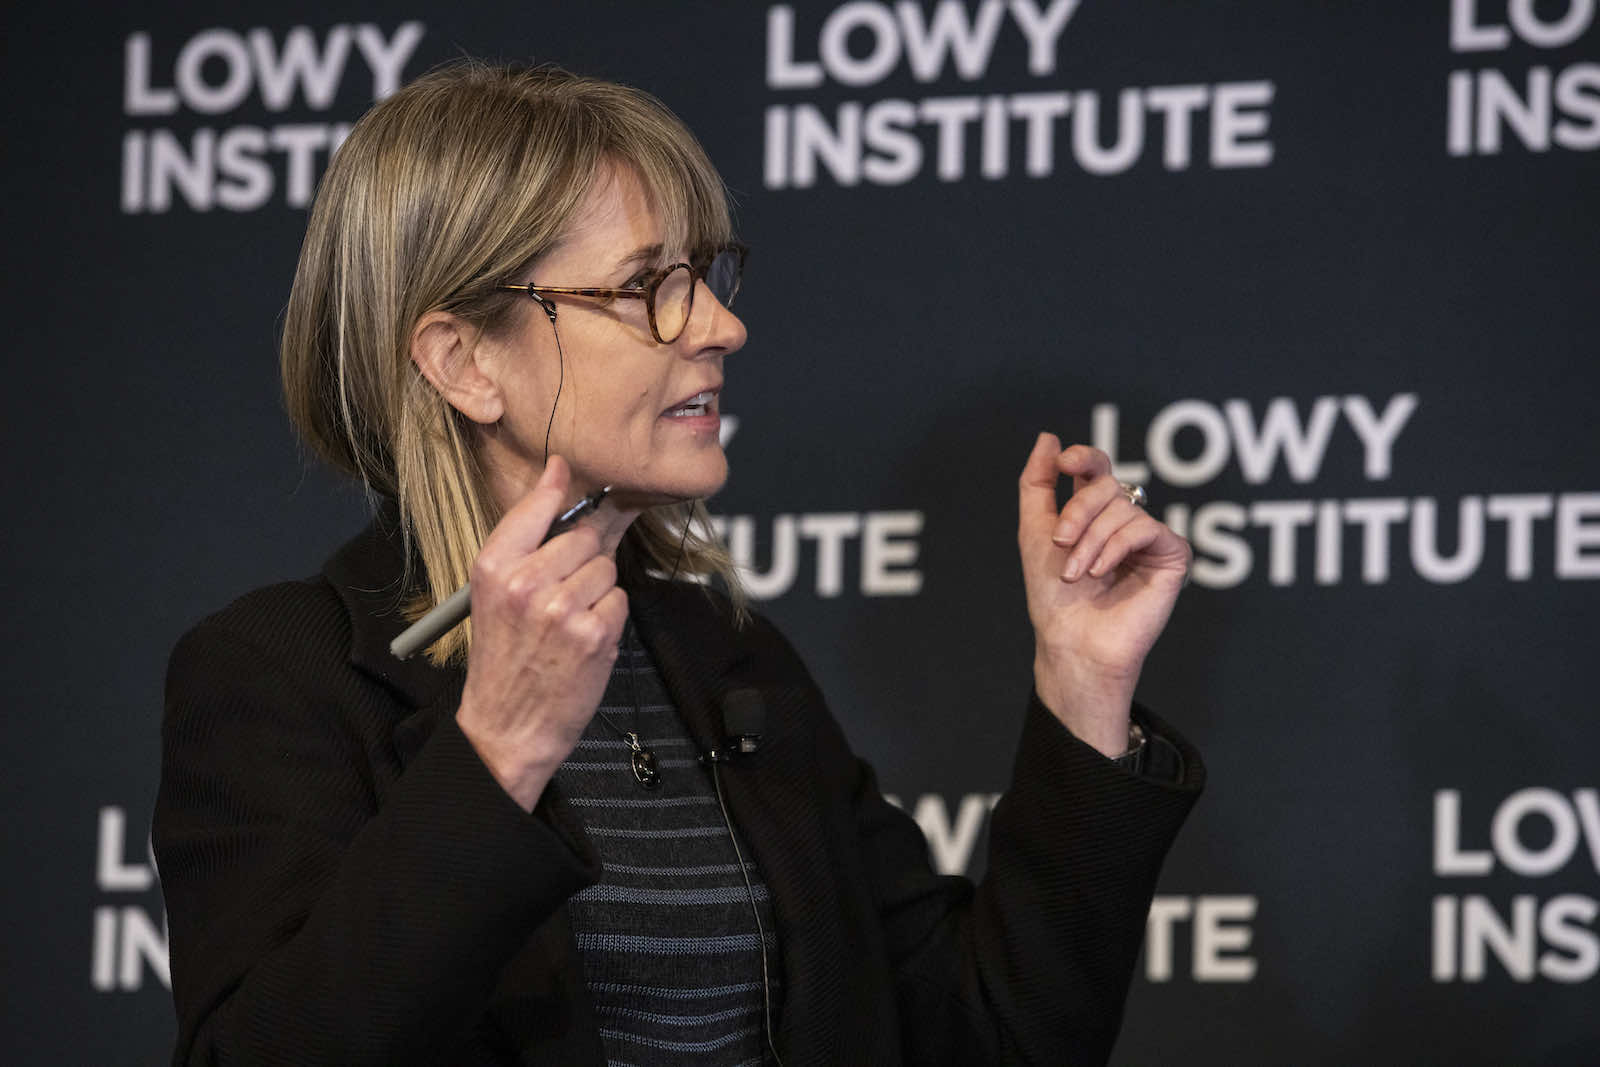 Alex Oliver, Director of Research at the Lowy Institute (Peter Morris/Sydney Heads)